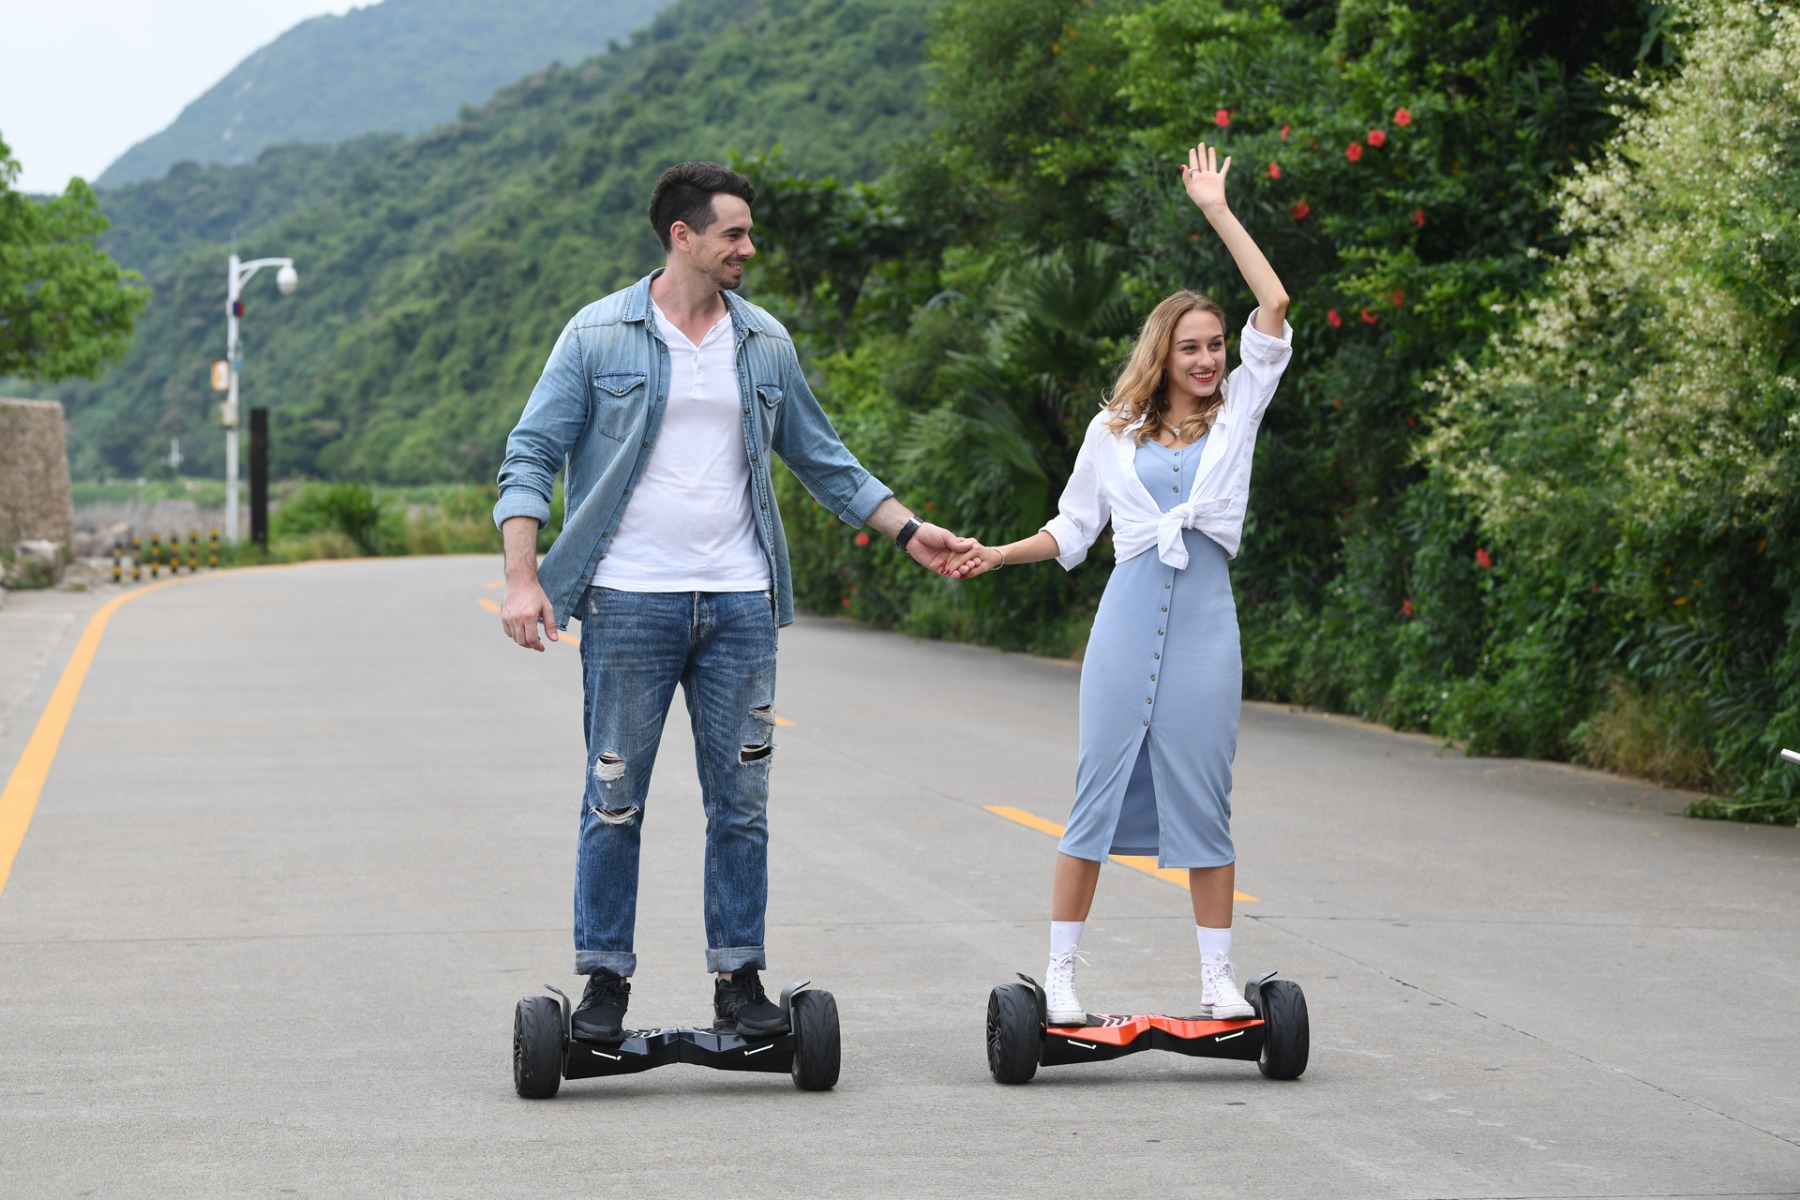 Black Lamborghini Hoverboard with Bluetooth Speaker - Best Gift for Someone Special